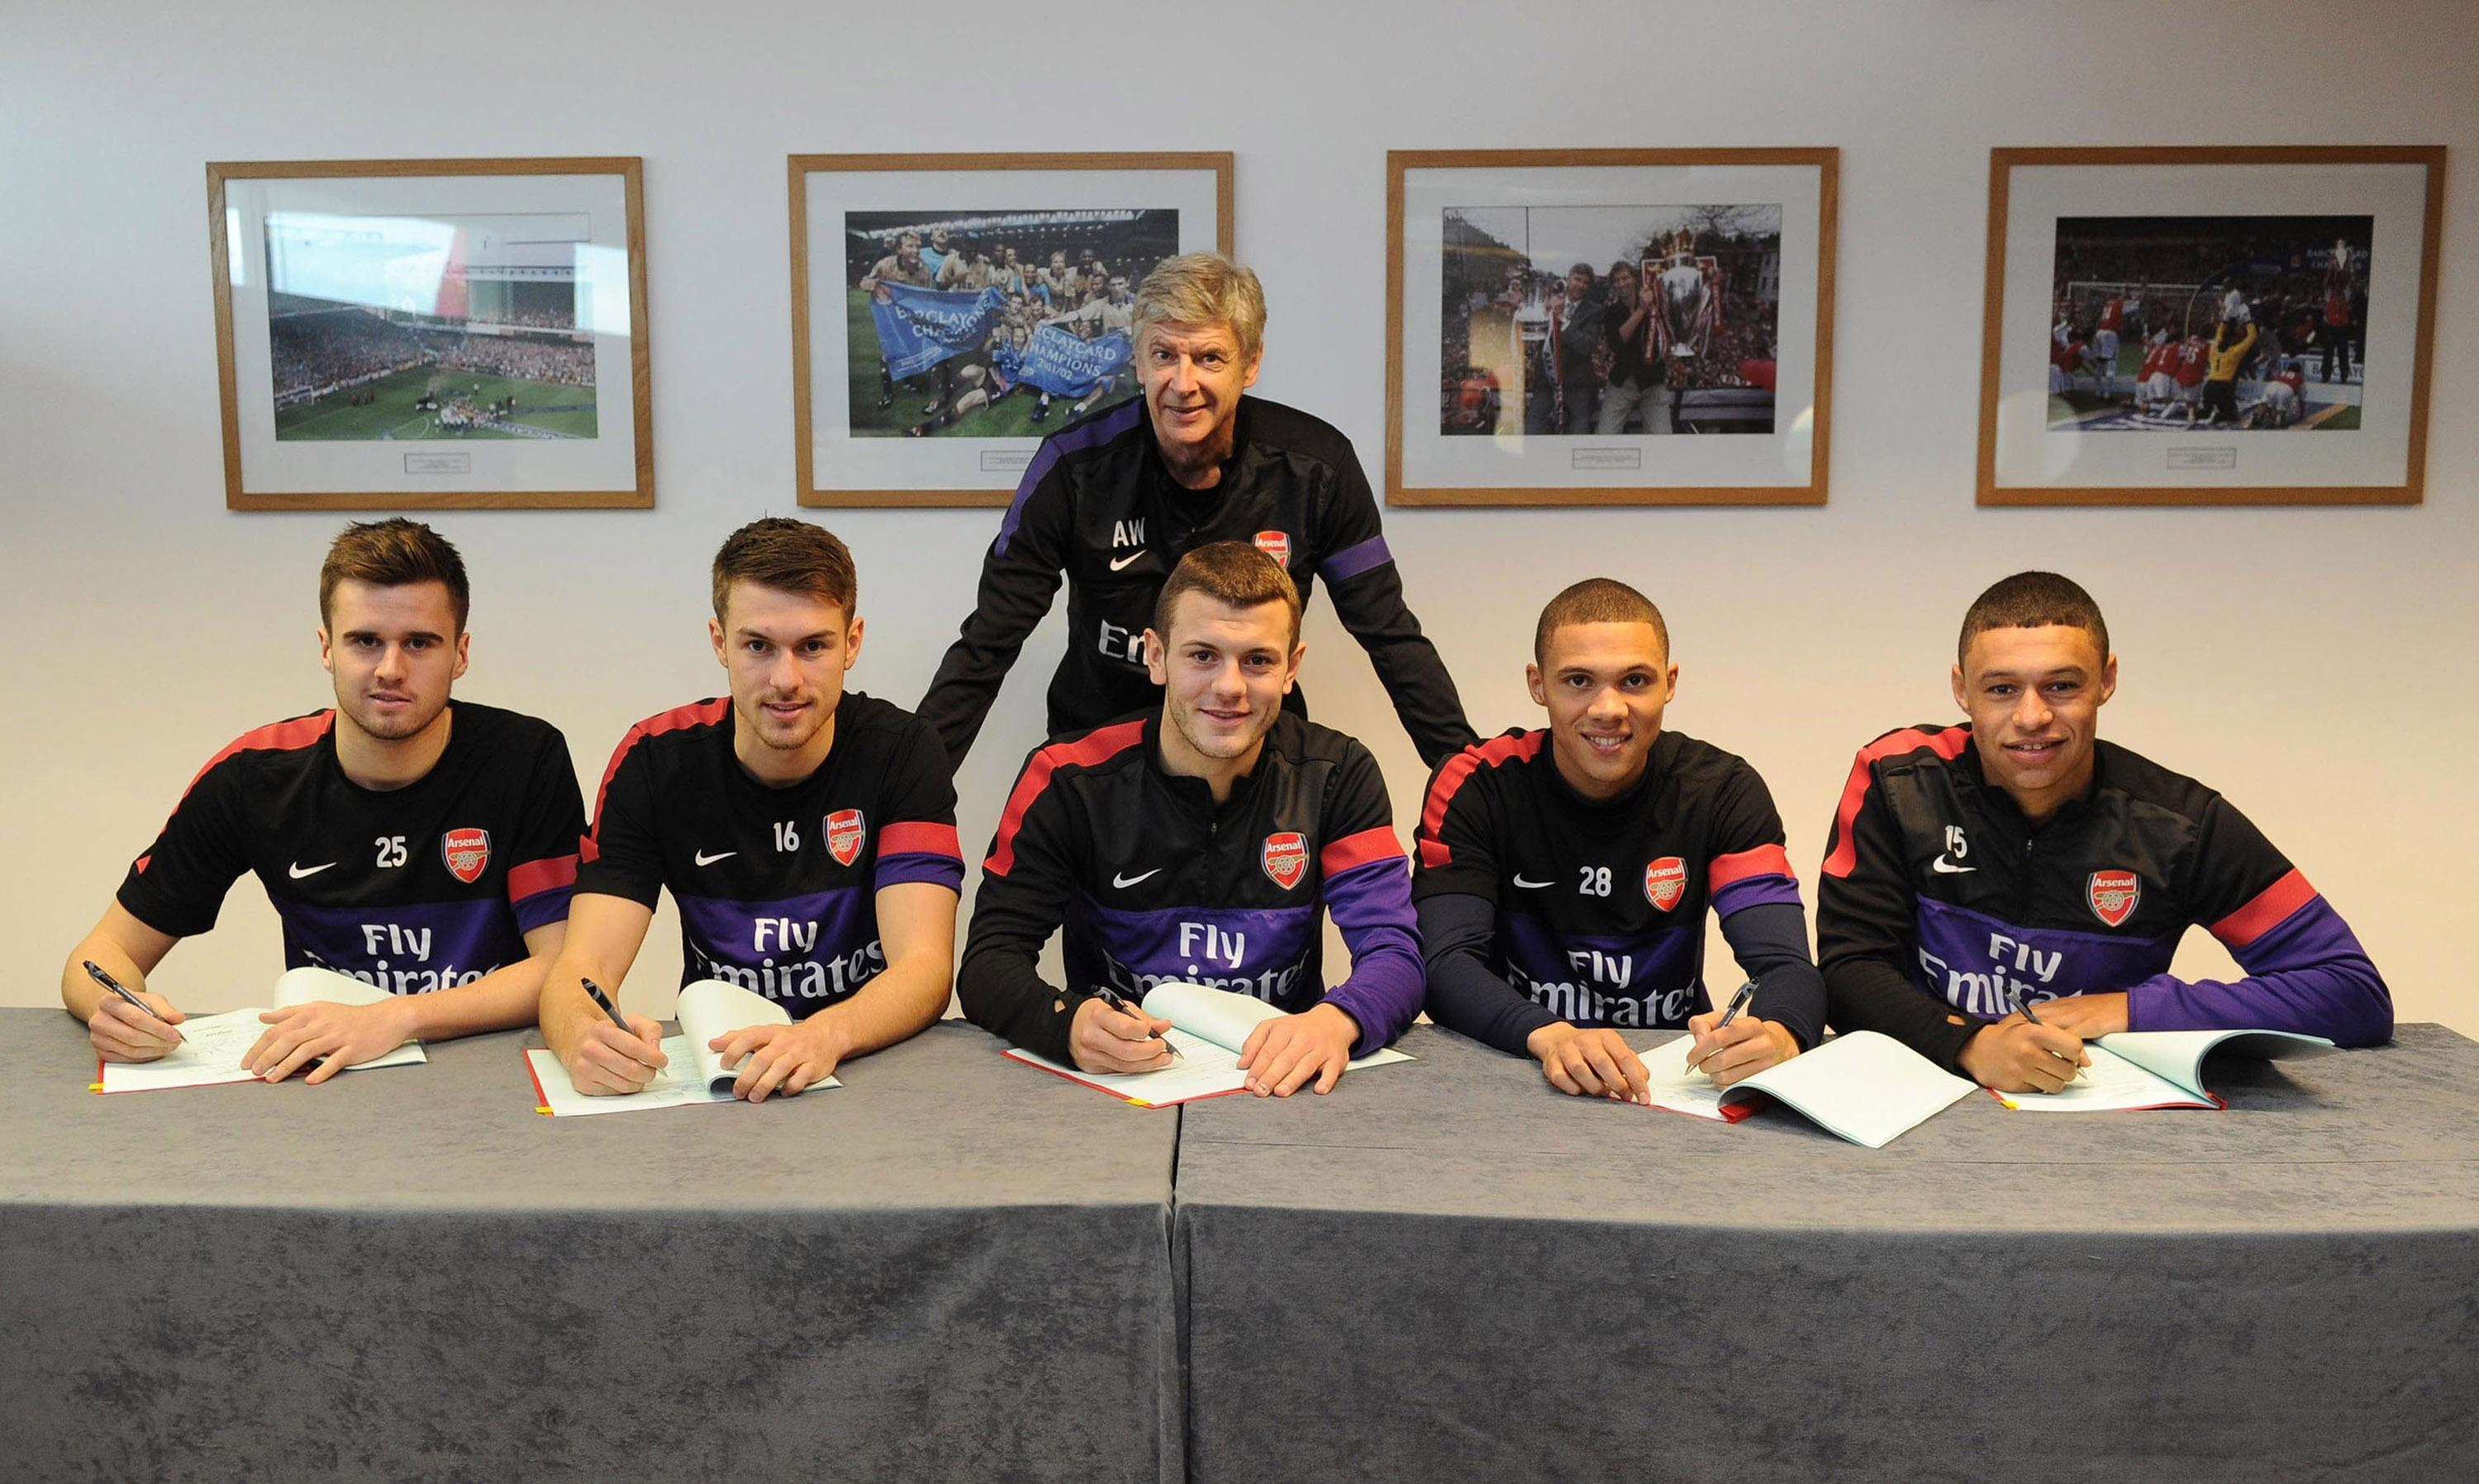 Arsene Wenger's legacy will be giving Jenkinson a five-year extension in 2015